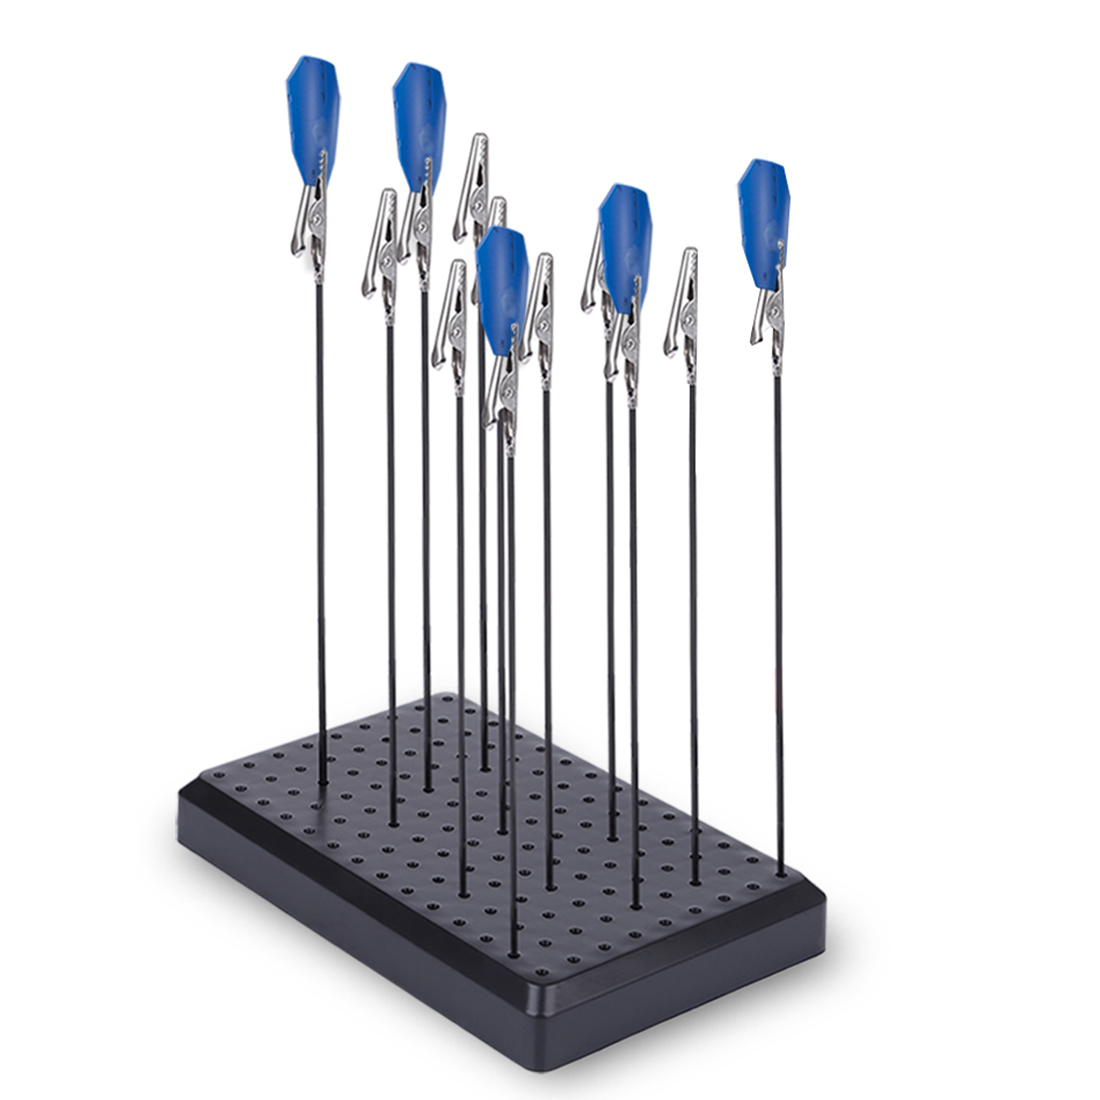 Model Color Tool 9 X 14 Holes Painting Stand Base With 10/20pcs Metal Alligator Clip Stick For Gundam Model Building Tool Sets